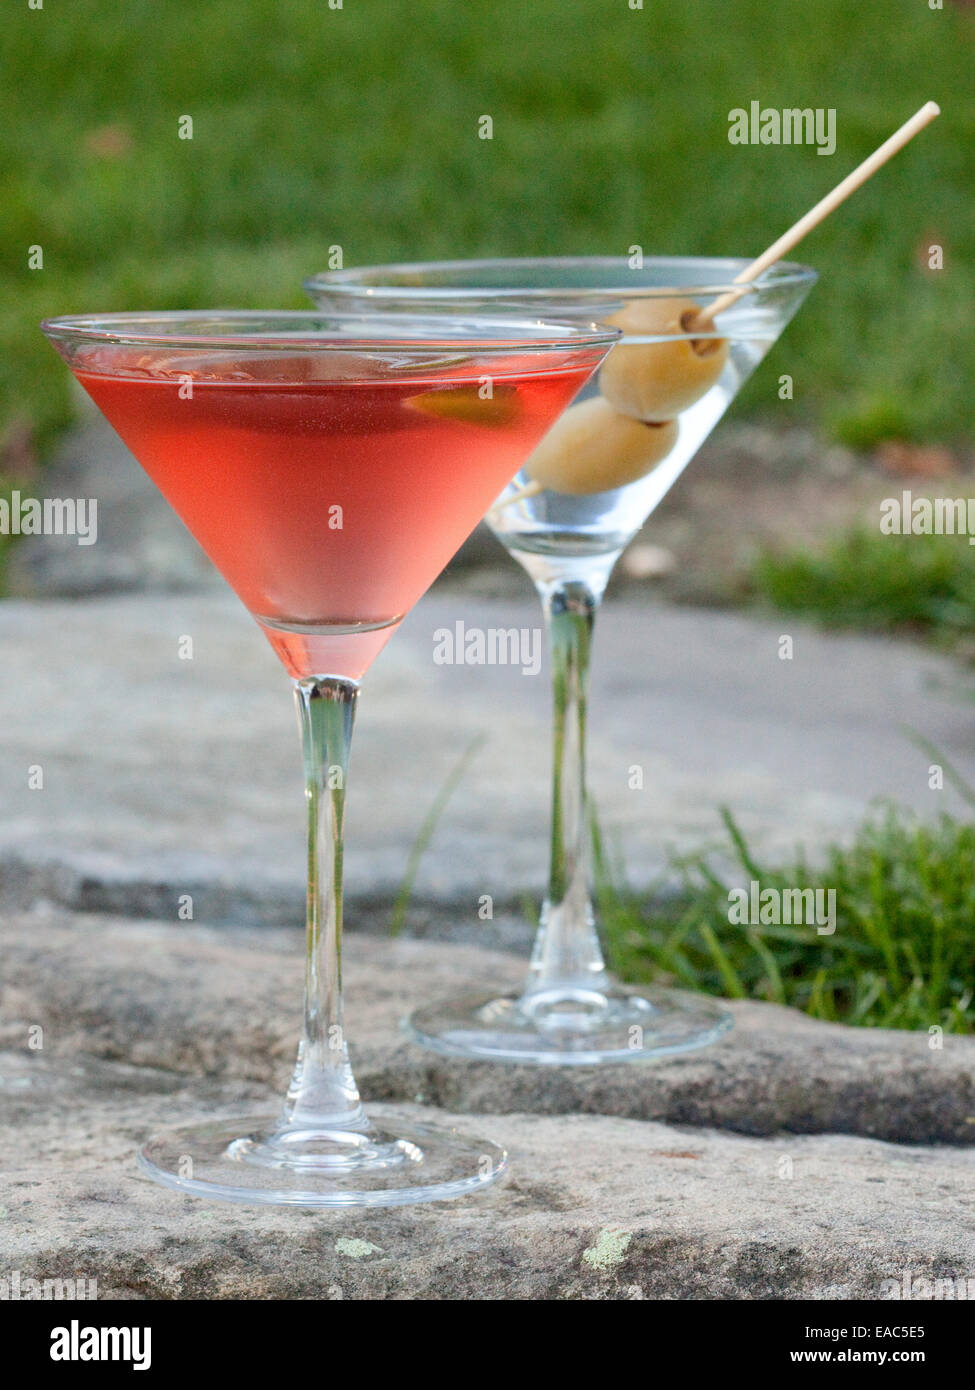 Cosmopolitan and and Martini on stone wall during outdoor reception - Stock Image